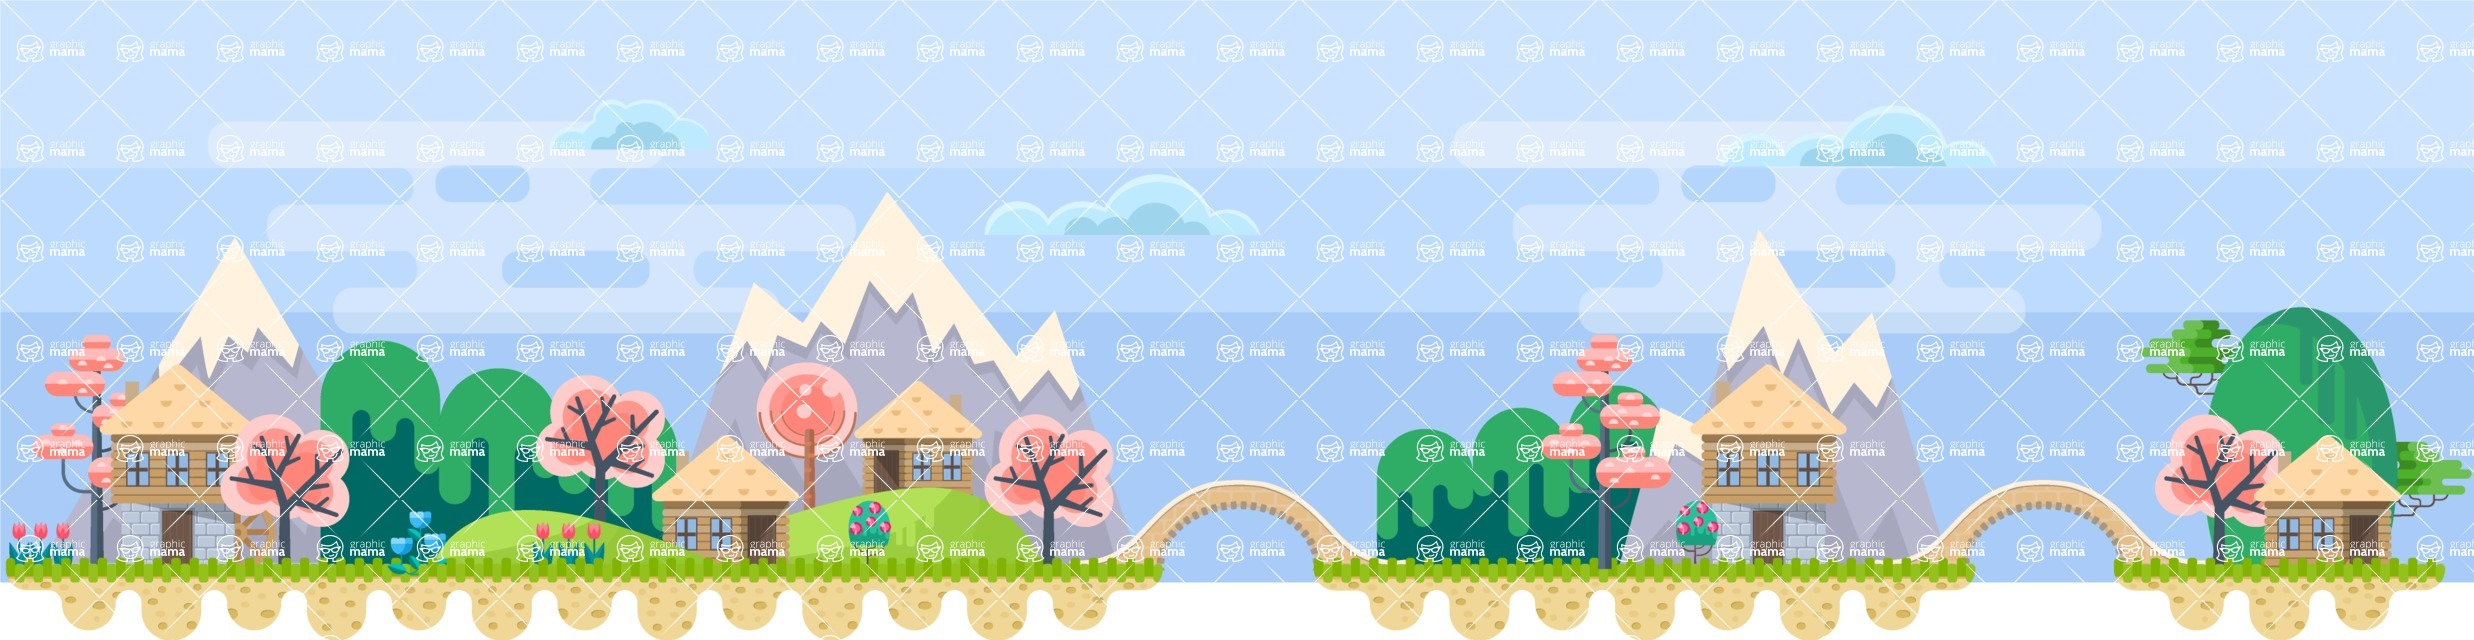 Background Vector Creation pack. A rich collection of flat vector elements for nature landscapes, city skylines, futuristic towns, fantastic scenes.  - Backgrounds 47